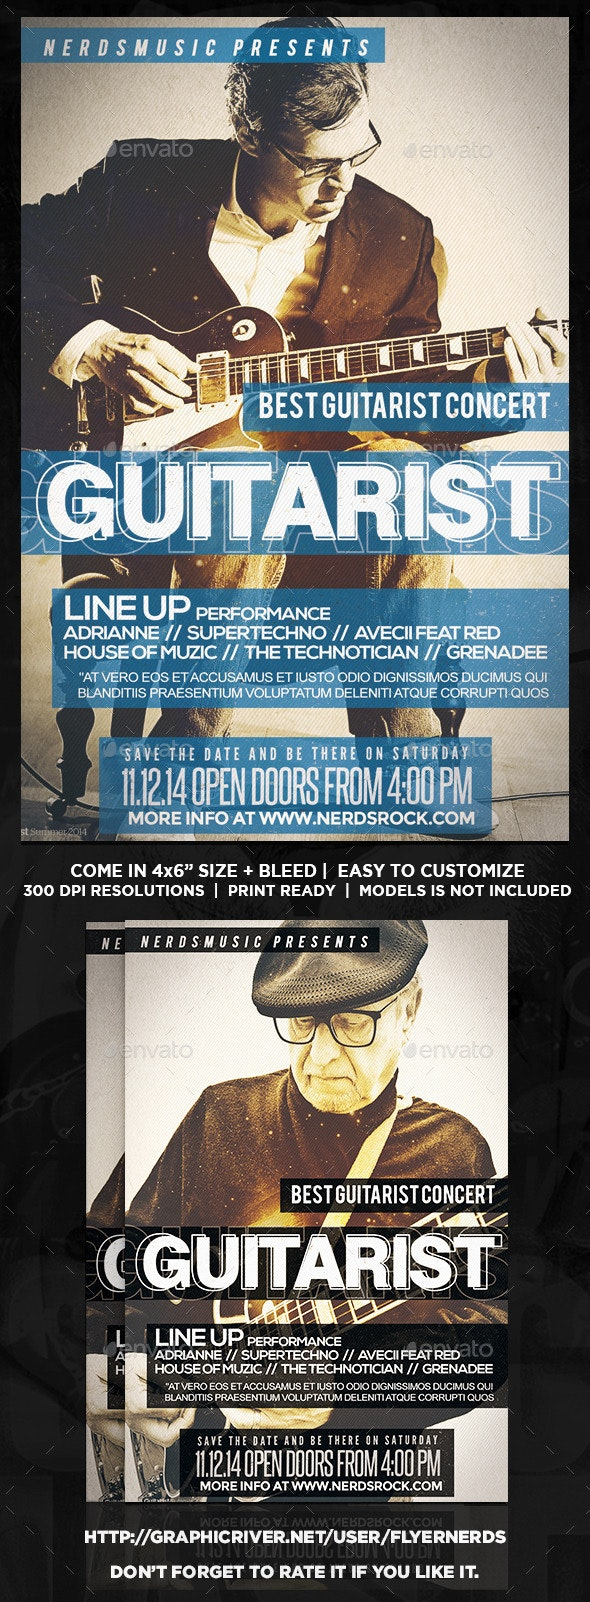 The Guitarist Music Flyer - Concerts Events